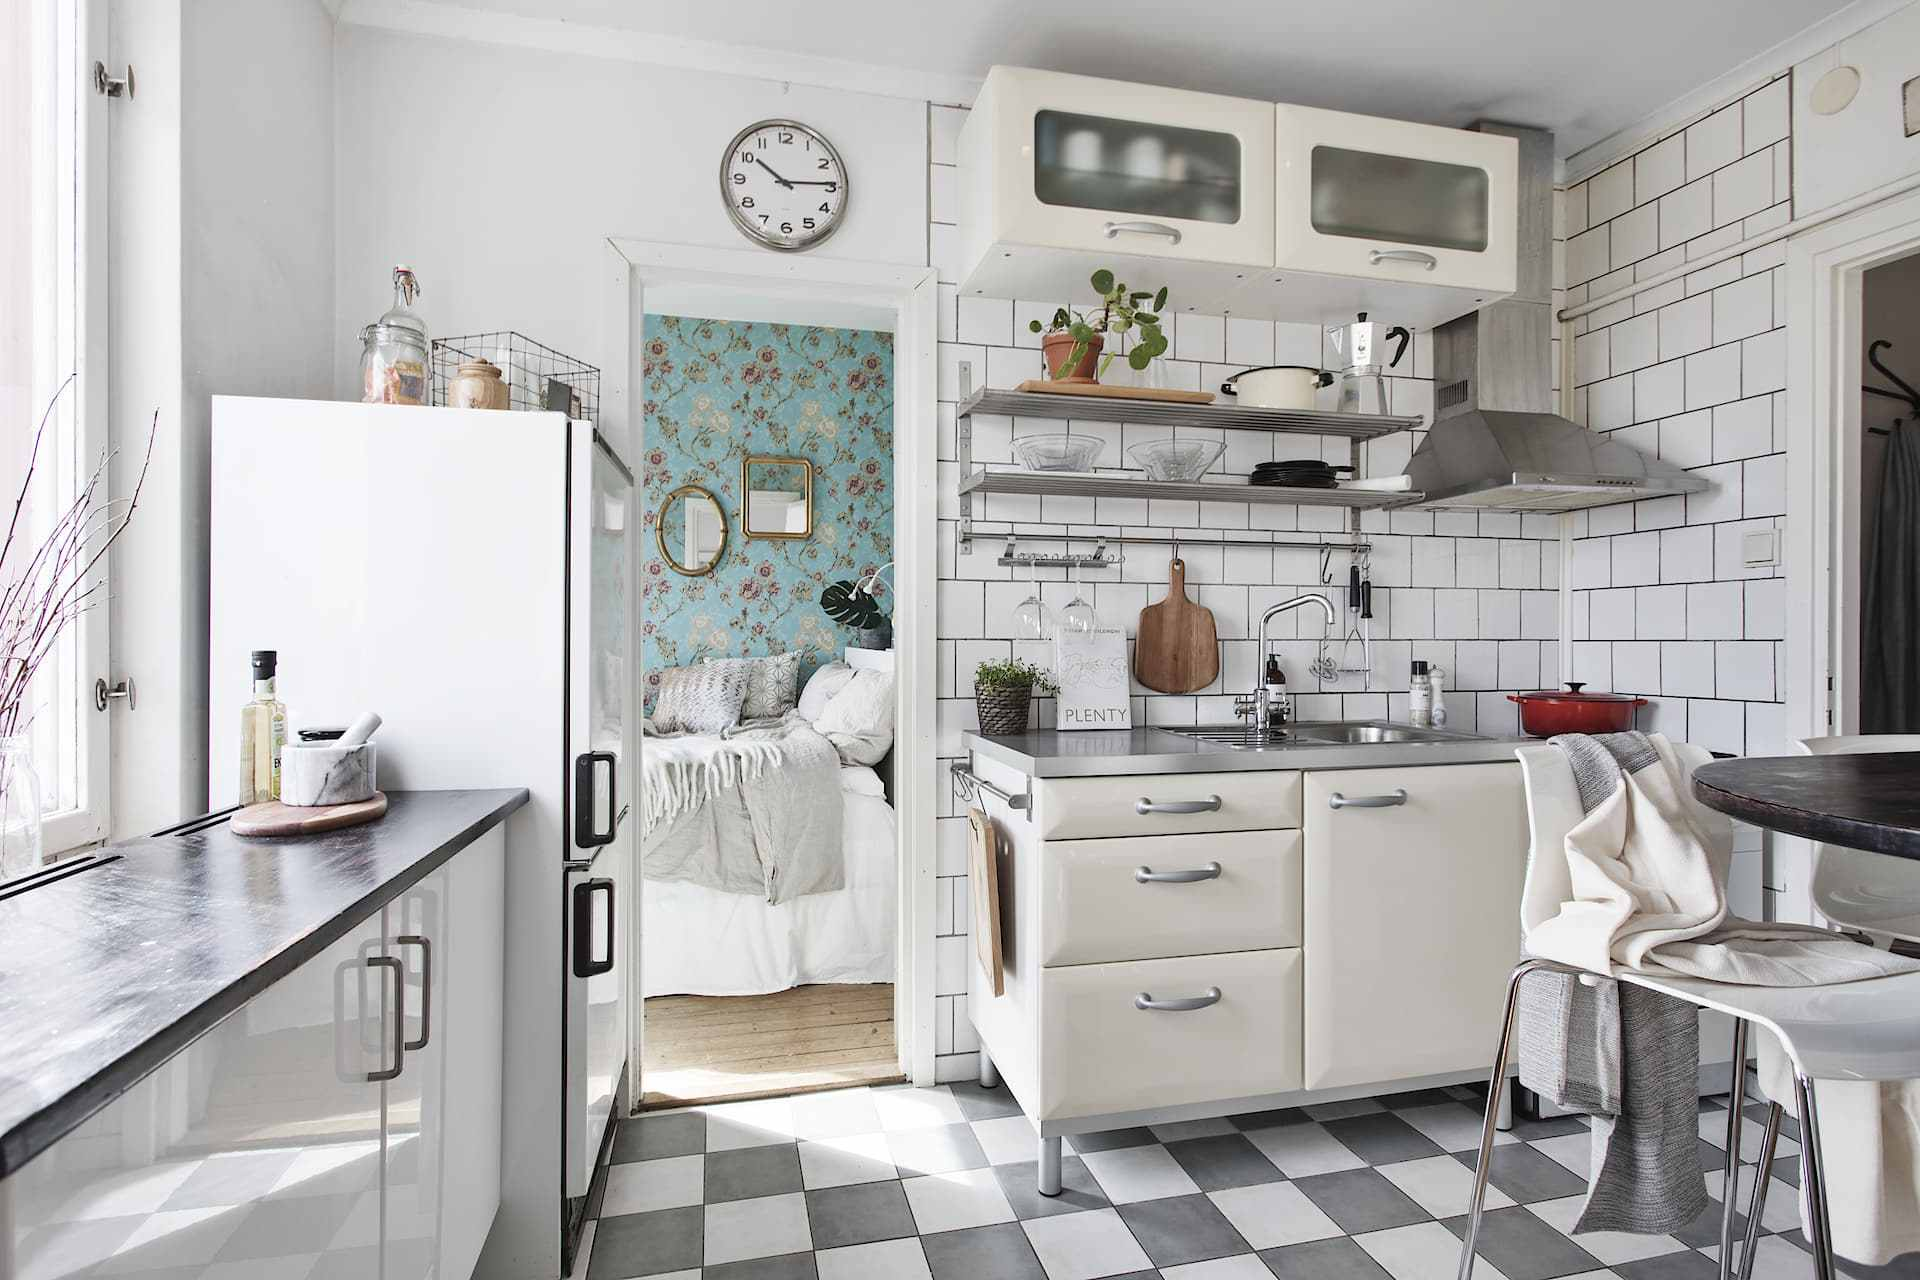 Kitchenette in a Swedish flat